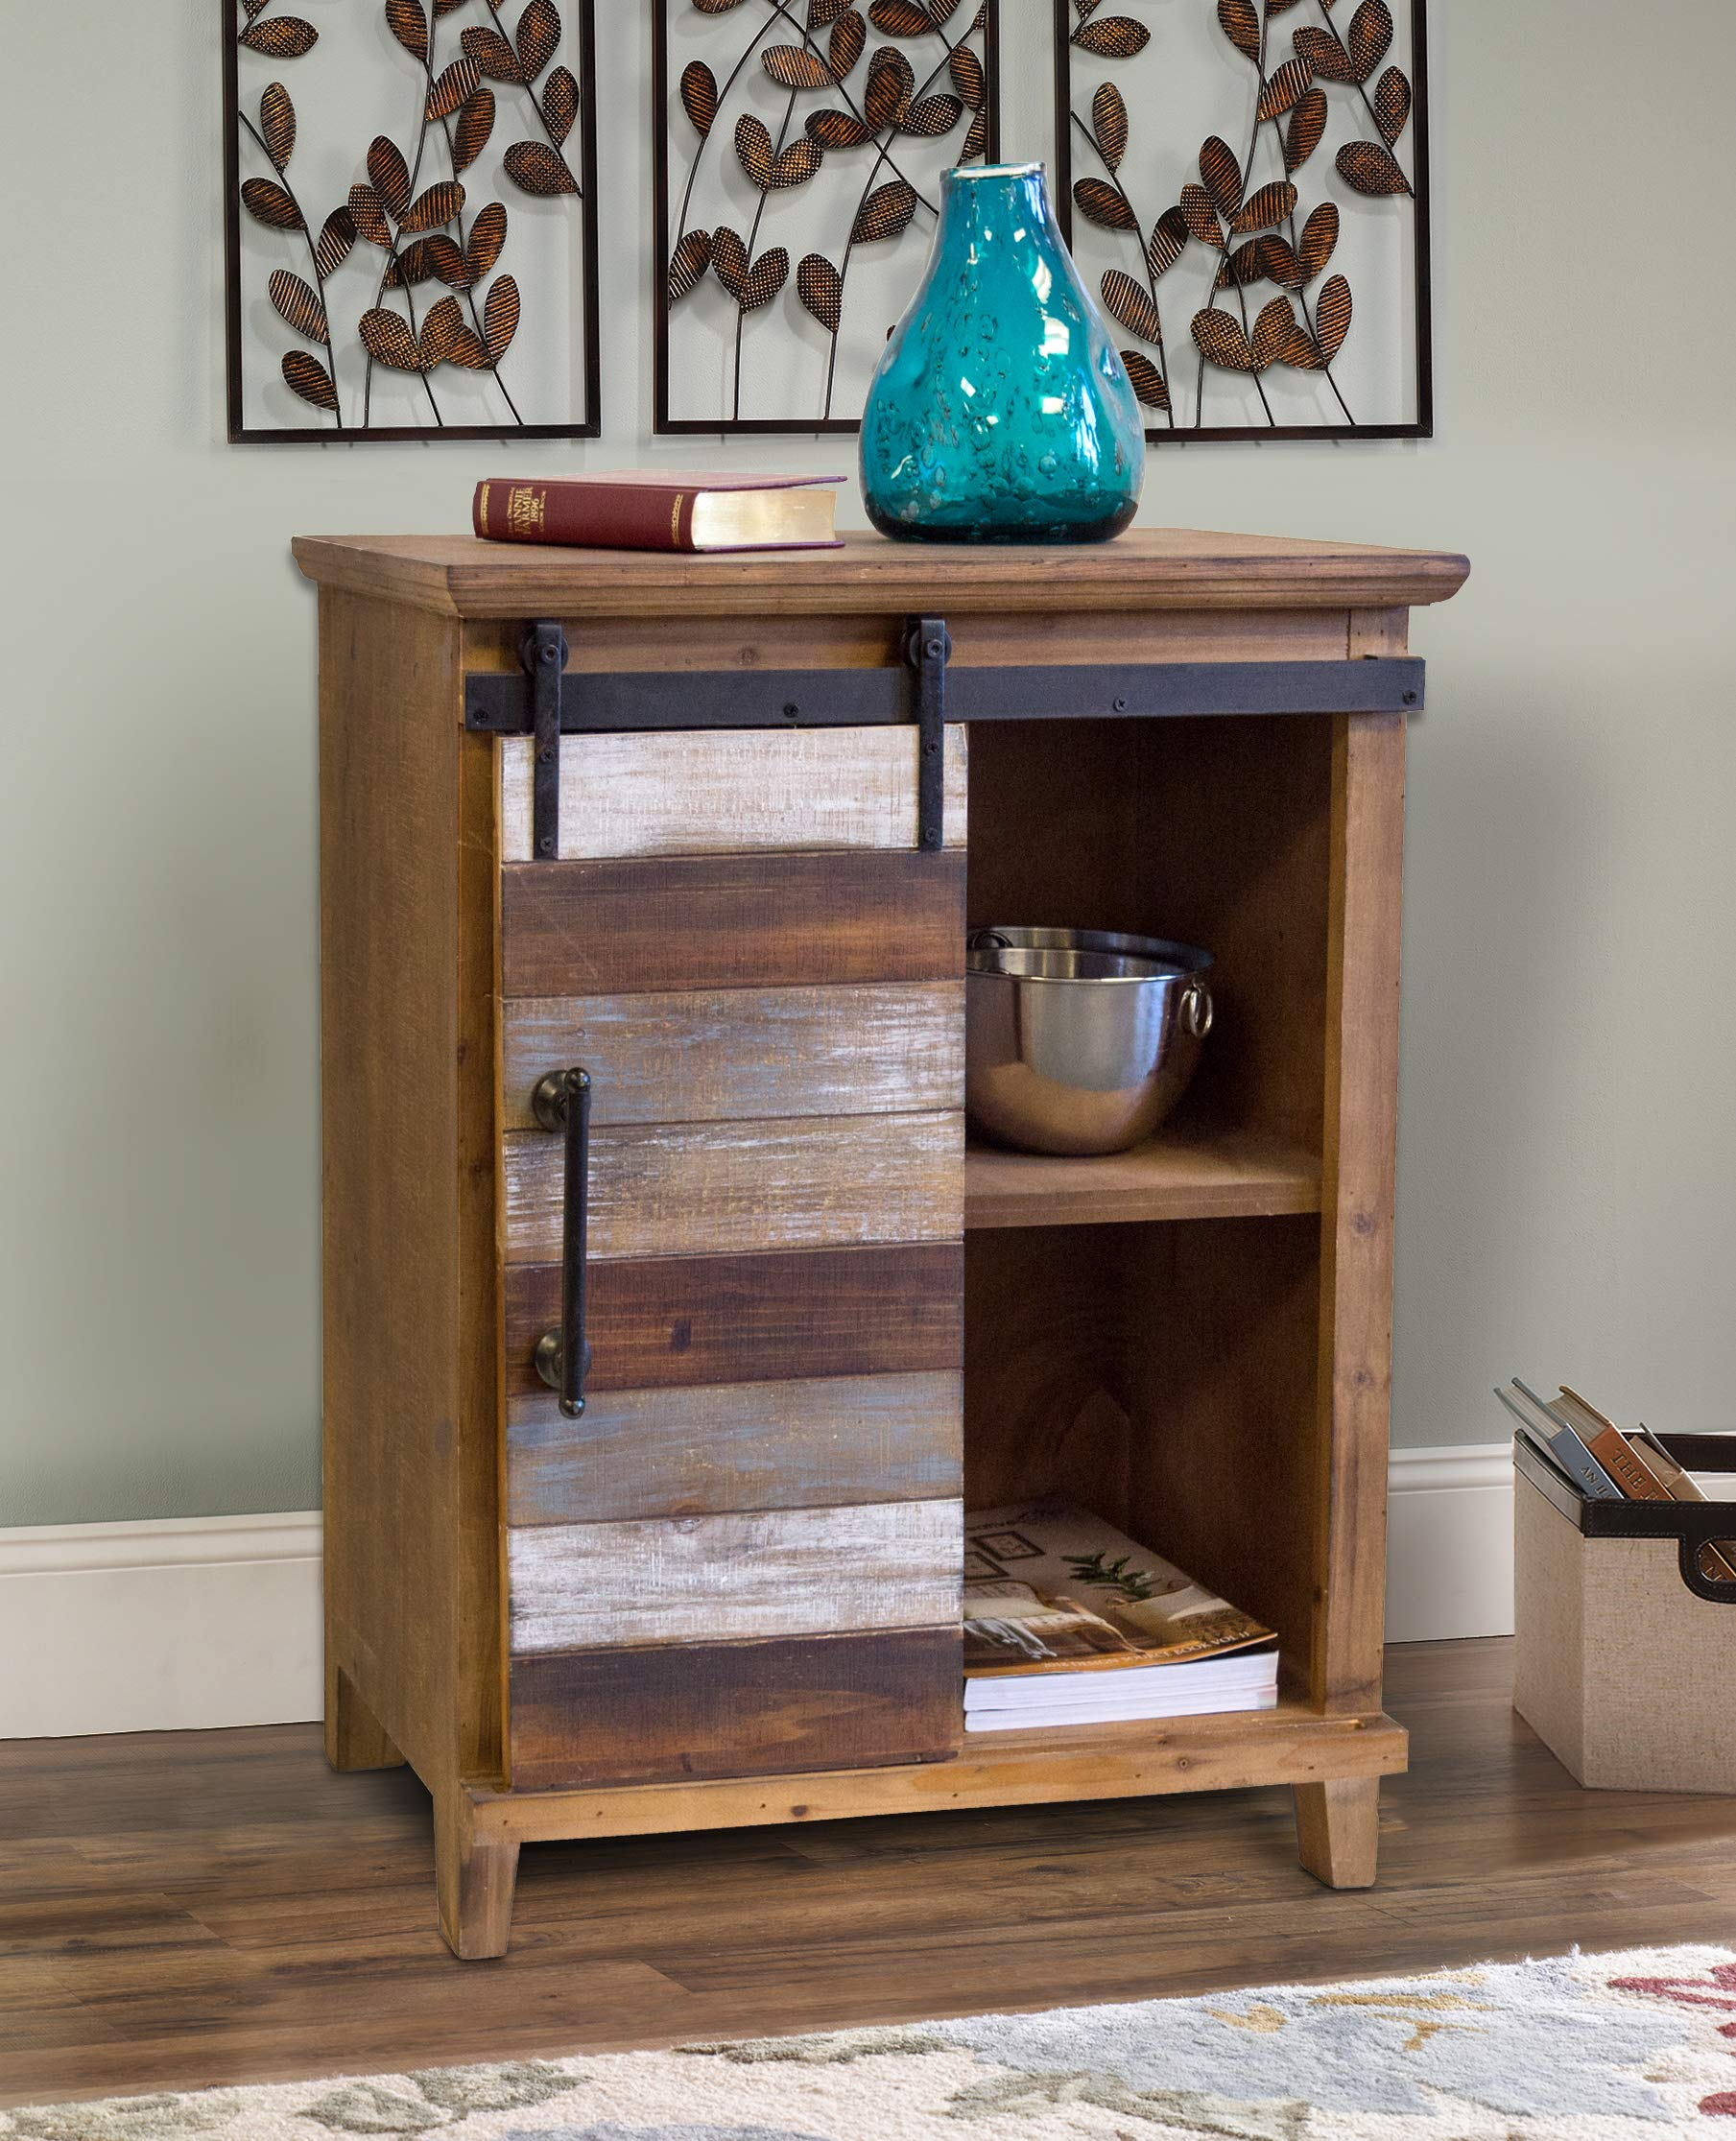 OS Home and Office pantry cabinet, Distressed, antique barnwood by OS Home and Office